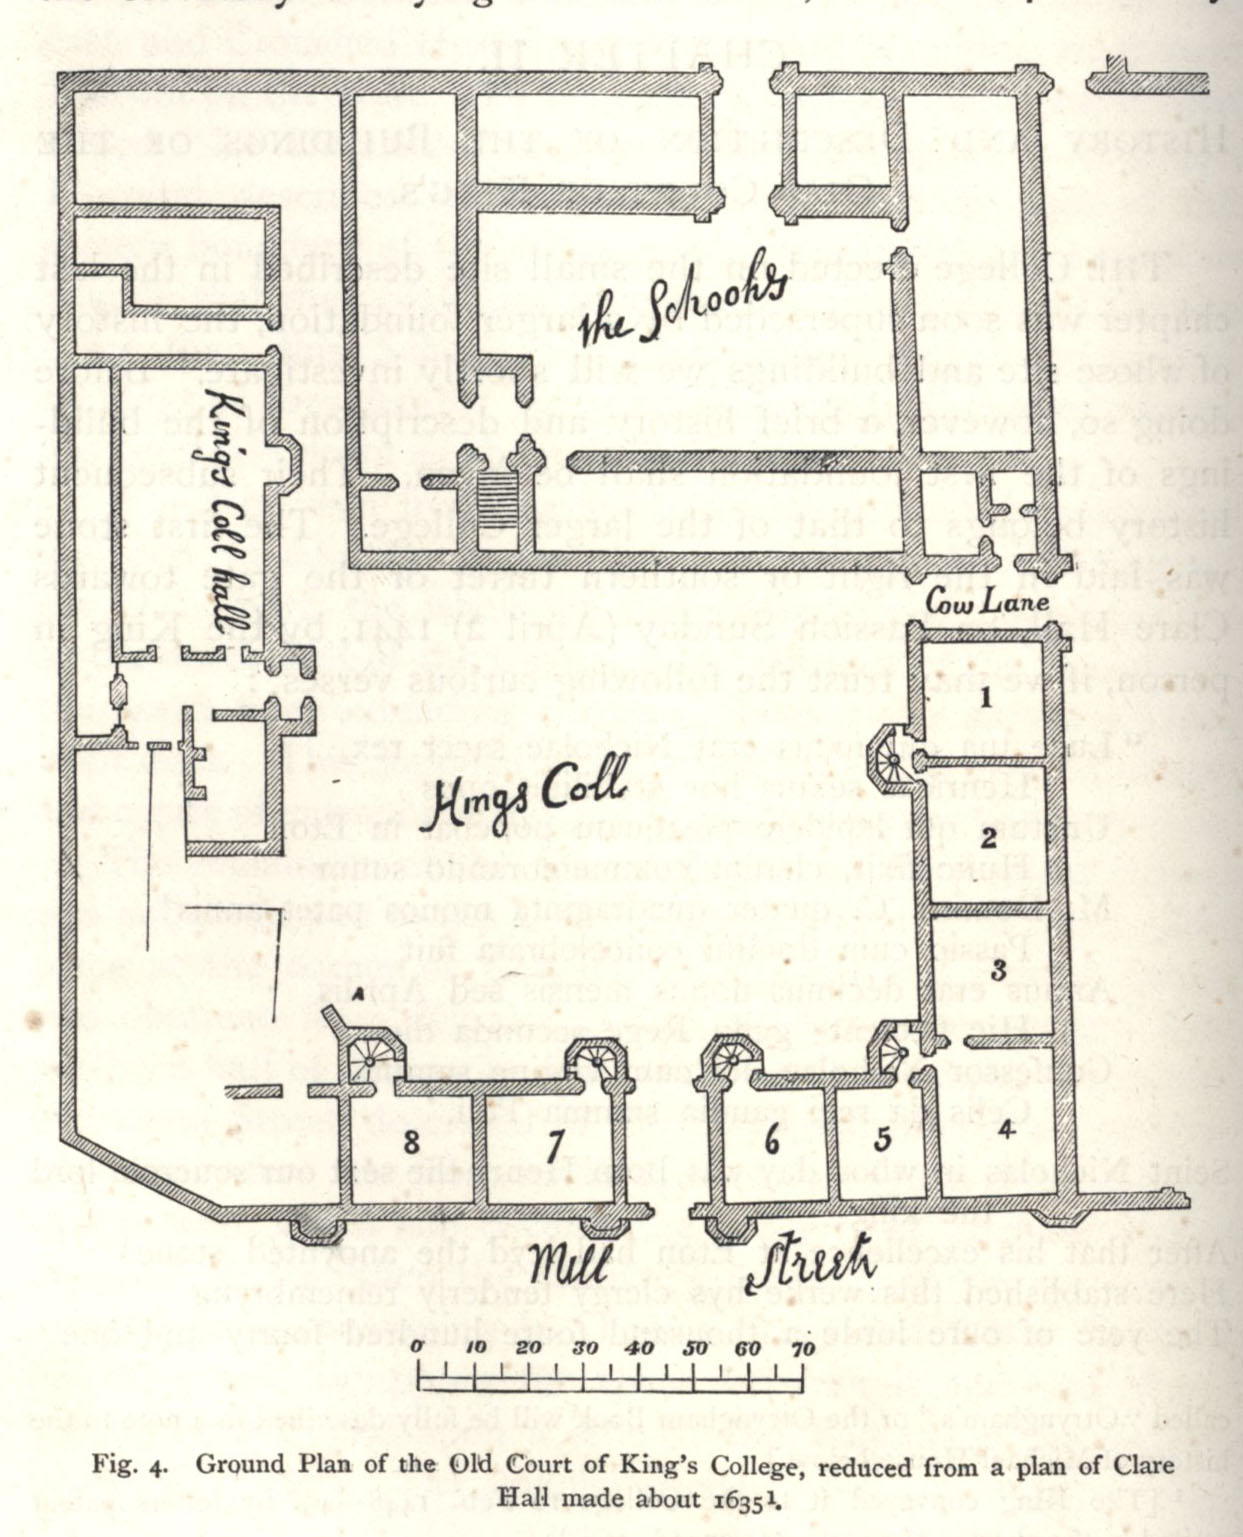 Ground plan of the Old Court. [Willis and Clark, vol. 1, p. 322, fig. 4]